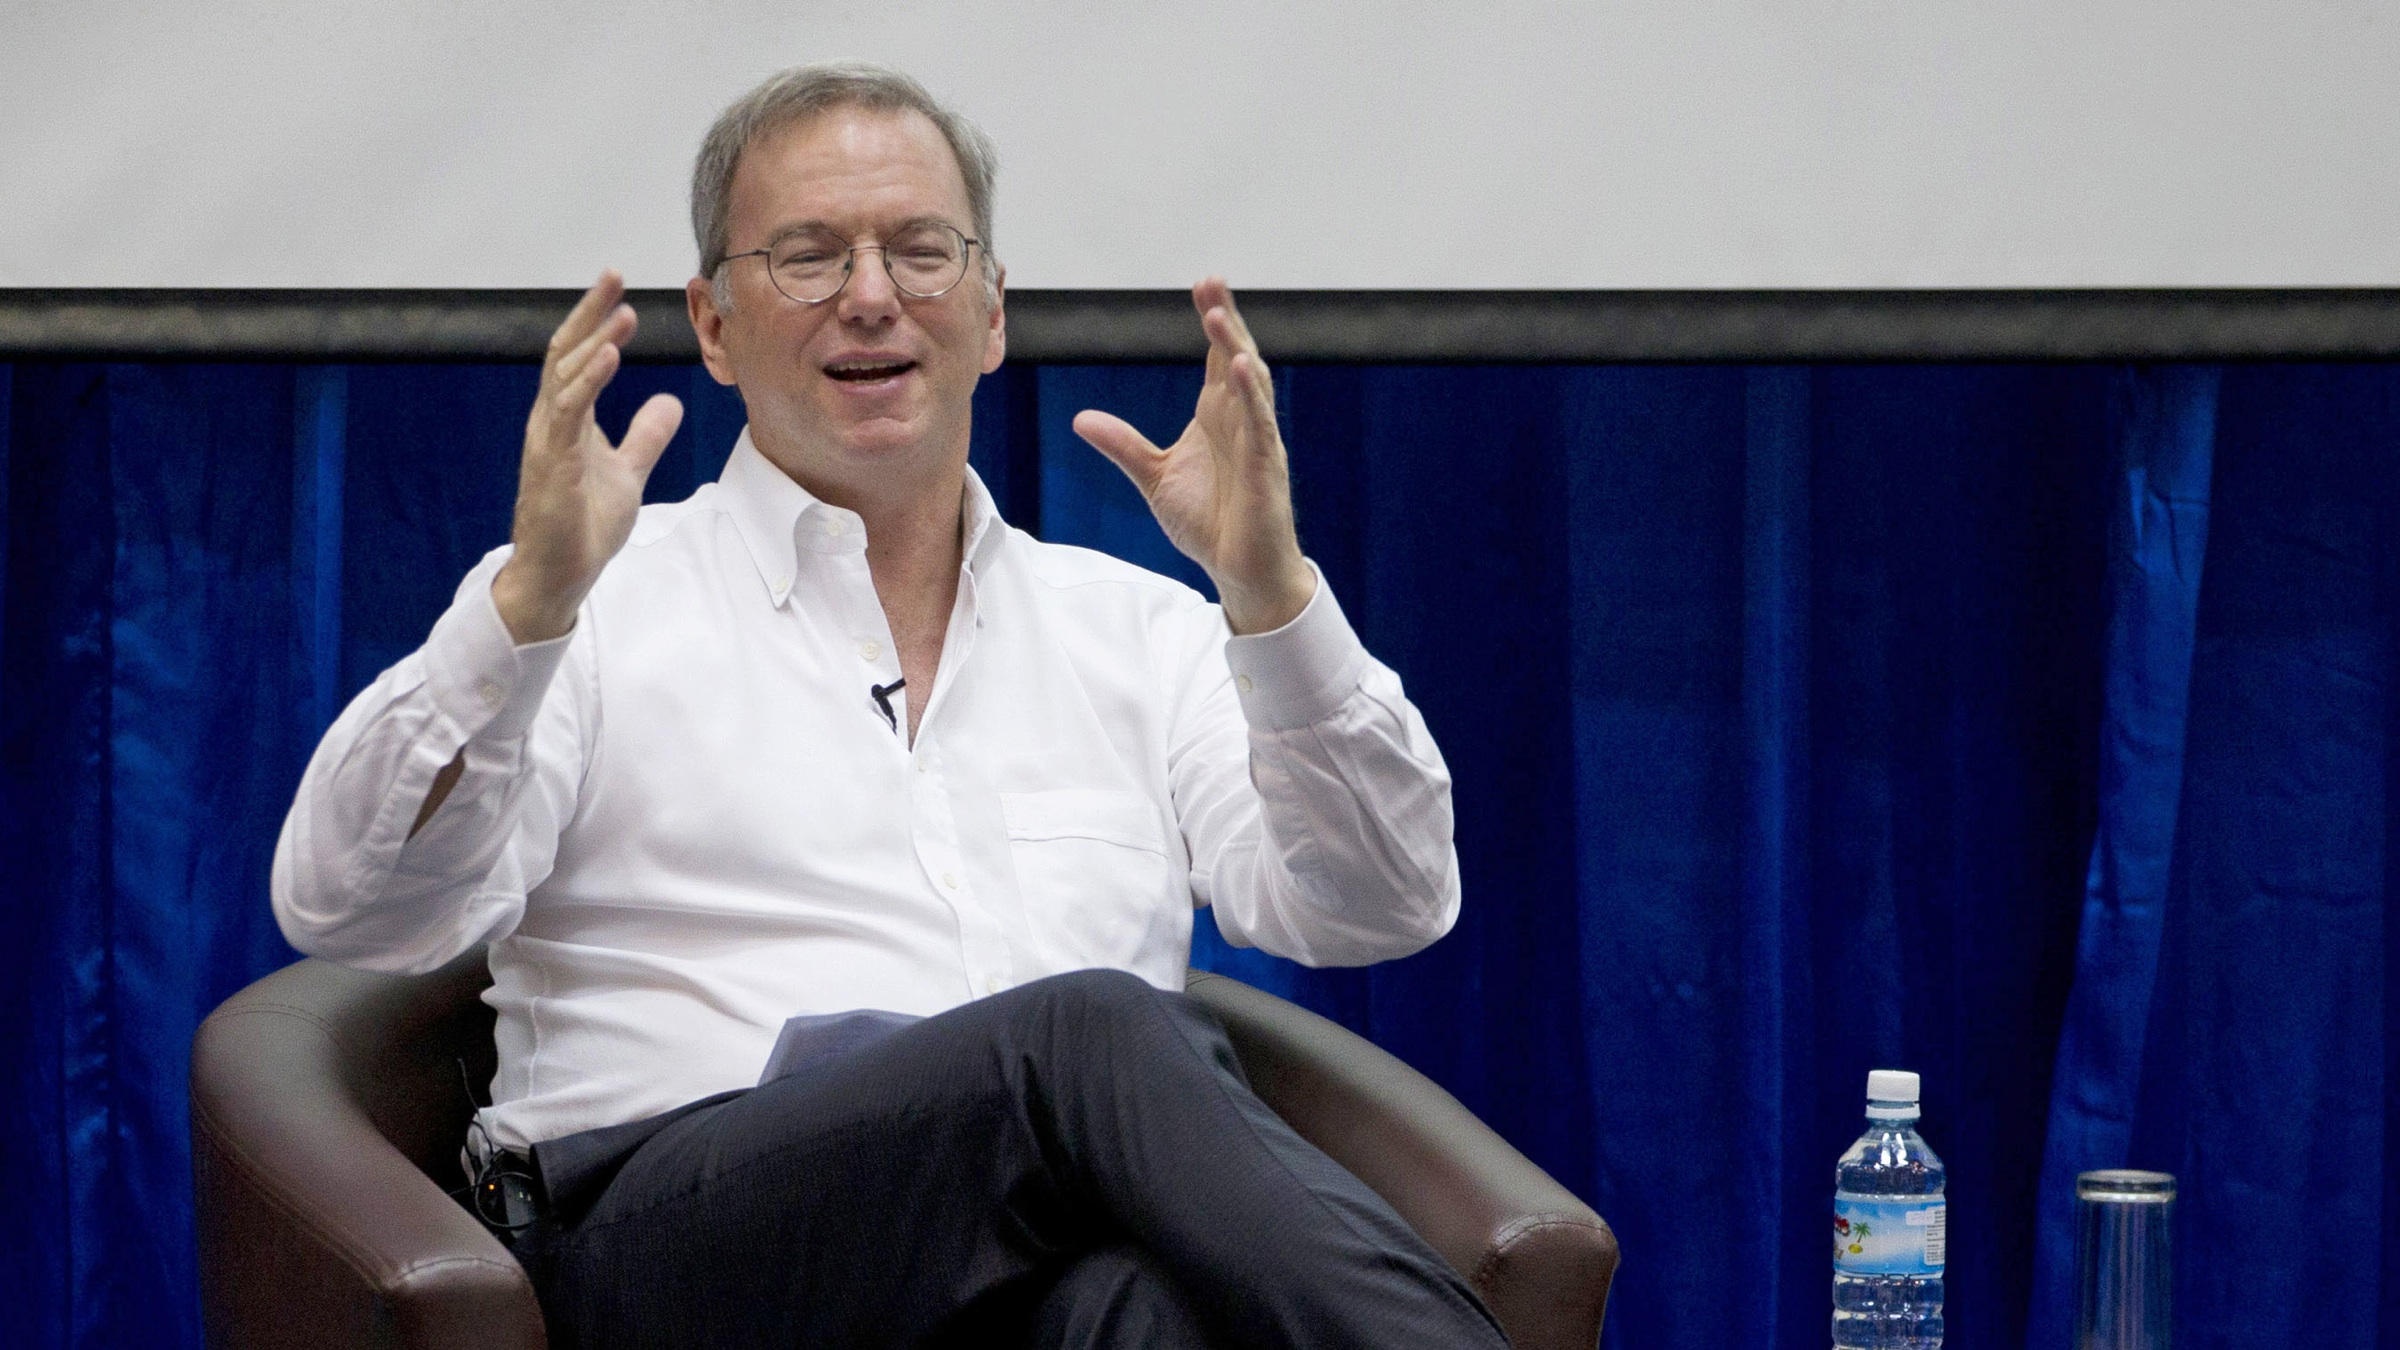 "Google executive chairman Eric Schmidt gestures during  an interactive session with group of students at a technical university in Yangon, Myanmar, Friday, Mar 22, 2013. Schmidt on Friday urged Myanmar's government to allow the private sector to develop the country's woeful telecommunications infrastructure, emphasizing the importance of competition and free speech. Schmidt's visit to Myanmar comes after trips to Libya, Afghanistan, and North Korea, which he said was a ""truly wacky place."" (AP Photo/Gemunu Amarasinghe)"